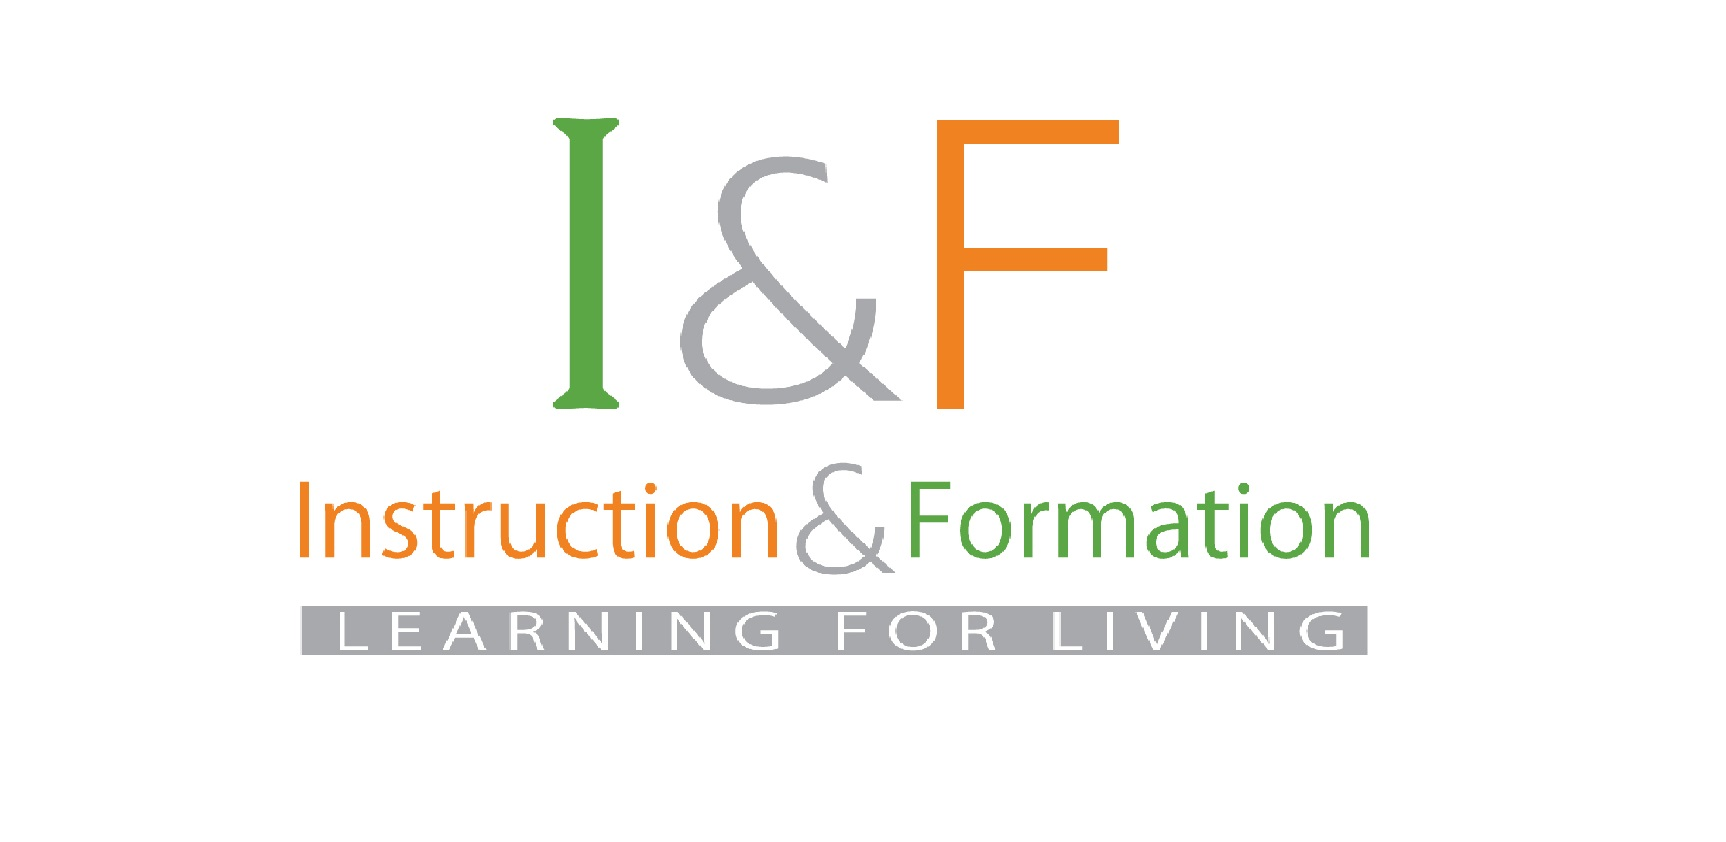 I-F-logo-INSTRUCTION-AND-FORMATION